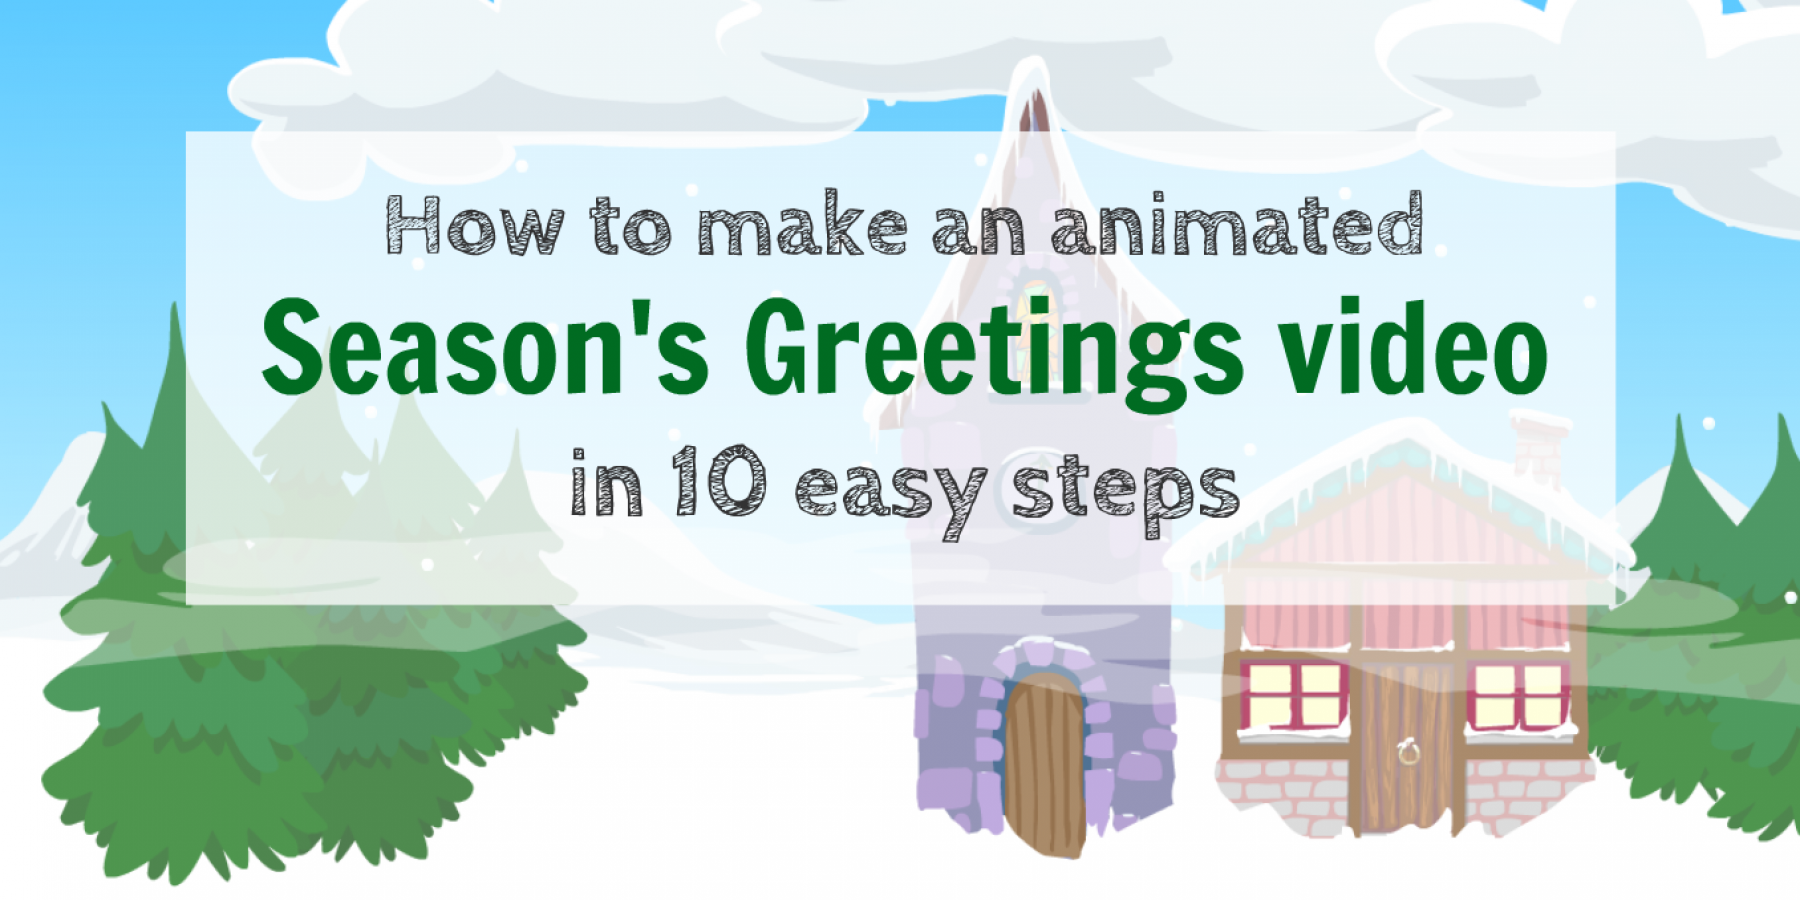 BLOG-SeasonsGreetings10tips